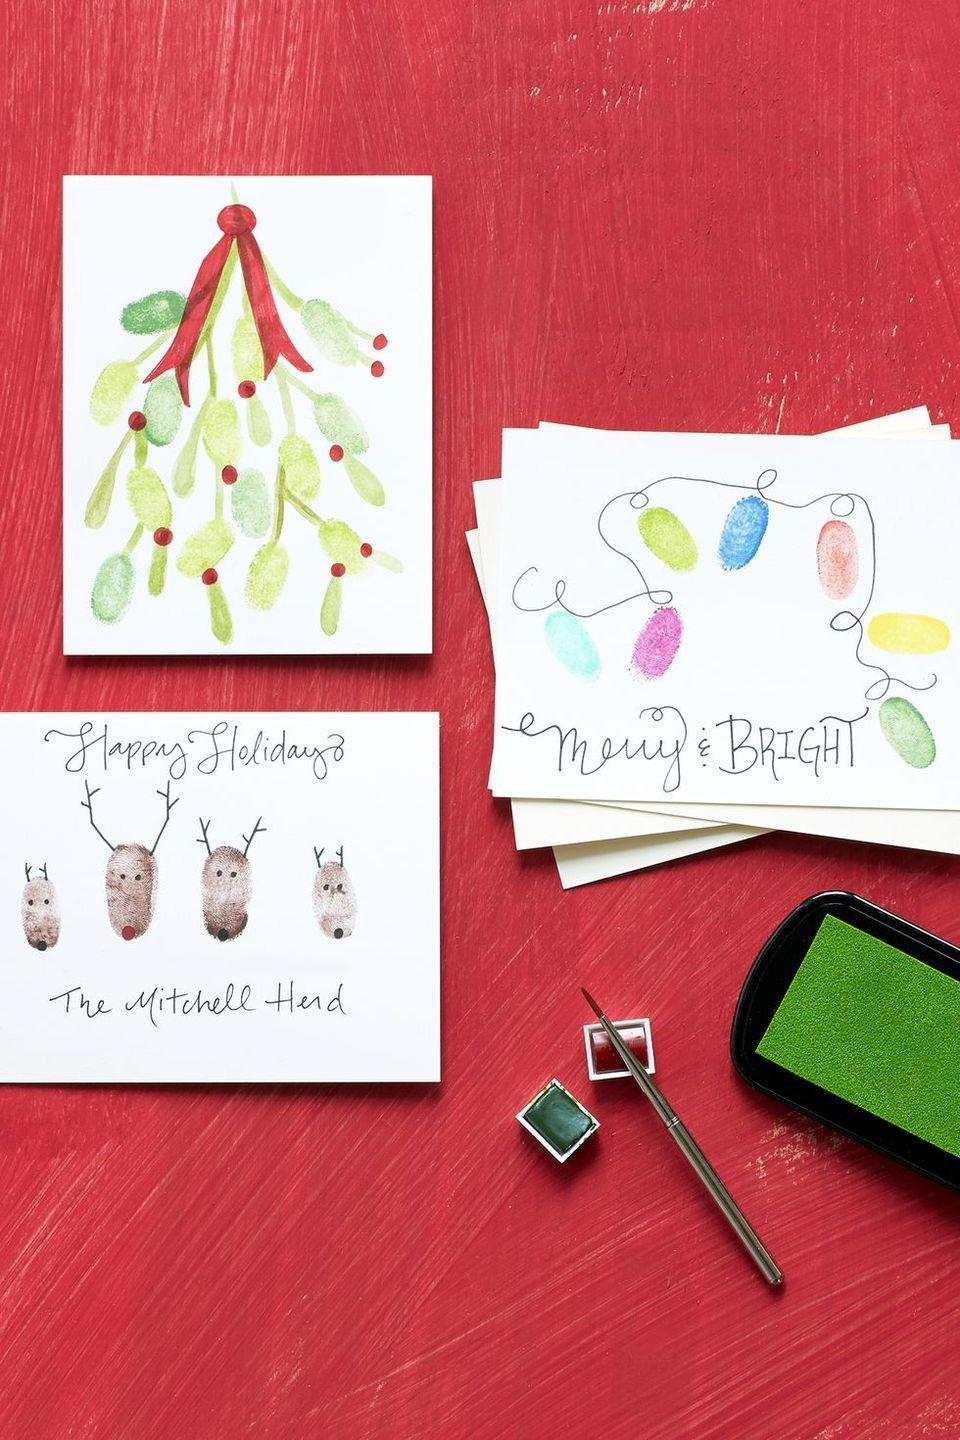 """<p>Give your guests a few pre-made cards to write in or let them craft their very own at this cute party. Better yet, hand out postcards that can be sent to the men and women serving our country overseas, or handed out to first responders at your local fire department. We've got tips for <a href=""""https://www.countryliving.com/diy-crafts/how-to/g3872/christmas-card-ideas/"""" rel=""""nofollow noopener"""" target=""""_blank"""" data-ylk=""""slk:crafting your own cards"""" class=""""link rapid-noclick-resp"""">crafting your own cards</a> <em>and</em> some thoughts on <a href=""""https://www.countryliving.com/life/a23064014/christmas-card-messages/"""" rel=""""nofollow noopener"""" target=""""_blank"""" data-ylk=""""slk:sweet messages"""" class=""""link rapid-noclick-resp"""">sweet messages</a> to put inside them.</p><p><a class=""""link rapid-noclick-resp"""" href=""""https://www.amazon.com/Antiquities-Vintage-Inspired-Traditional-Old-Fashioned-M6719XSG/dp/B01KDDNHNK?tag=syn-yahoo-20&ascsubtag=%5Bartid%7C10050.g.2218%5Bsrc%7Cyahoo-us"""" rel=""""nofollow noopener"""" target=""""_blank"""" data-ylk=""""slk:SHOP CHRISTMAS CARDS"""">SHOP CHRISTMAS CARDS</a></p>"""